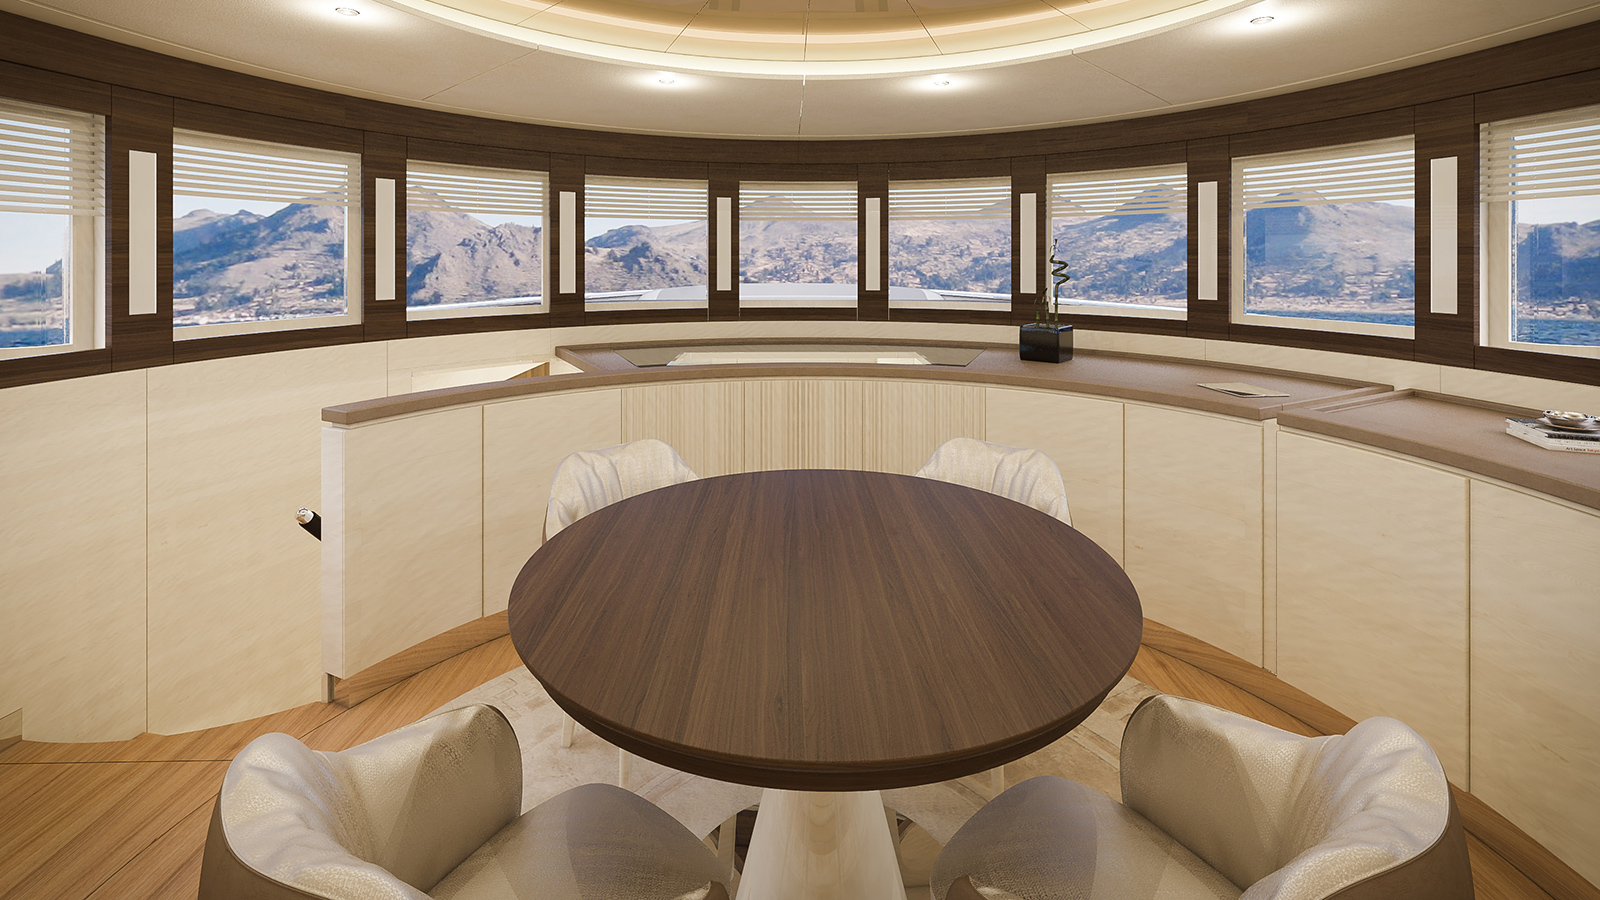 the-dining-area-on-the-filippetti-26-navetta-super-yacht-is-on-the-main-deck